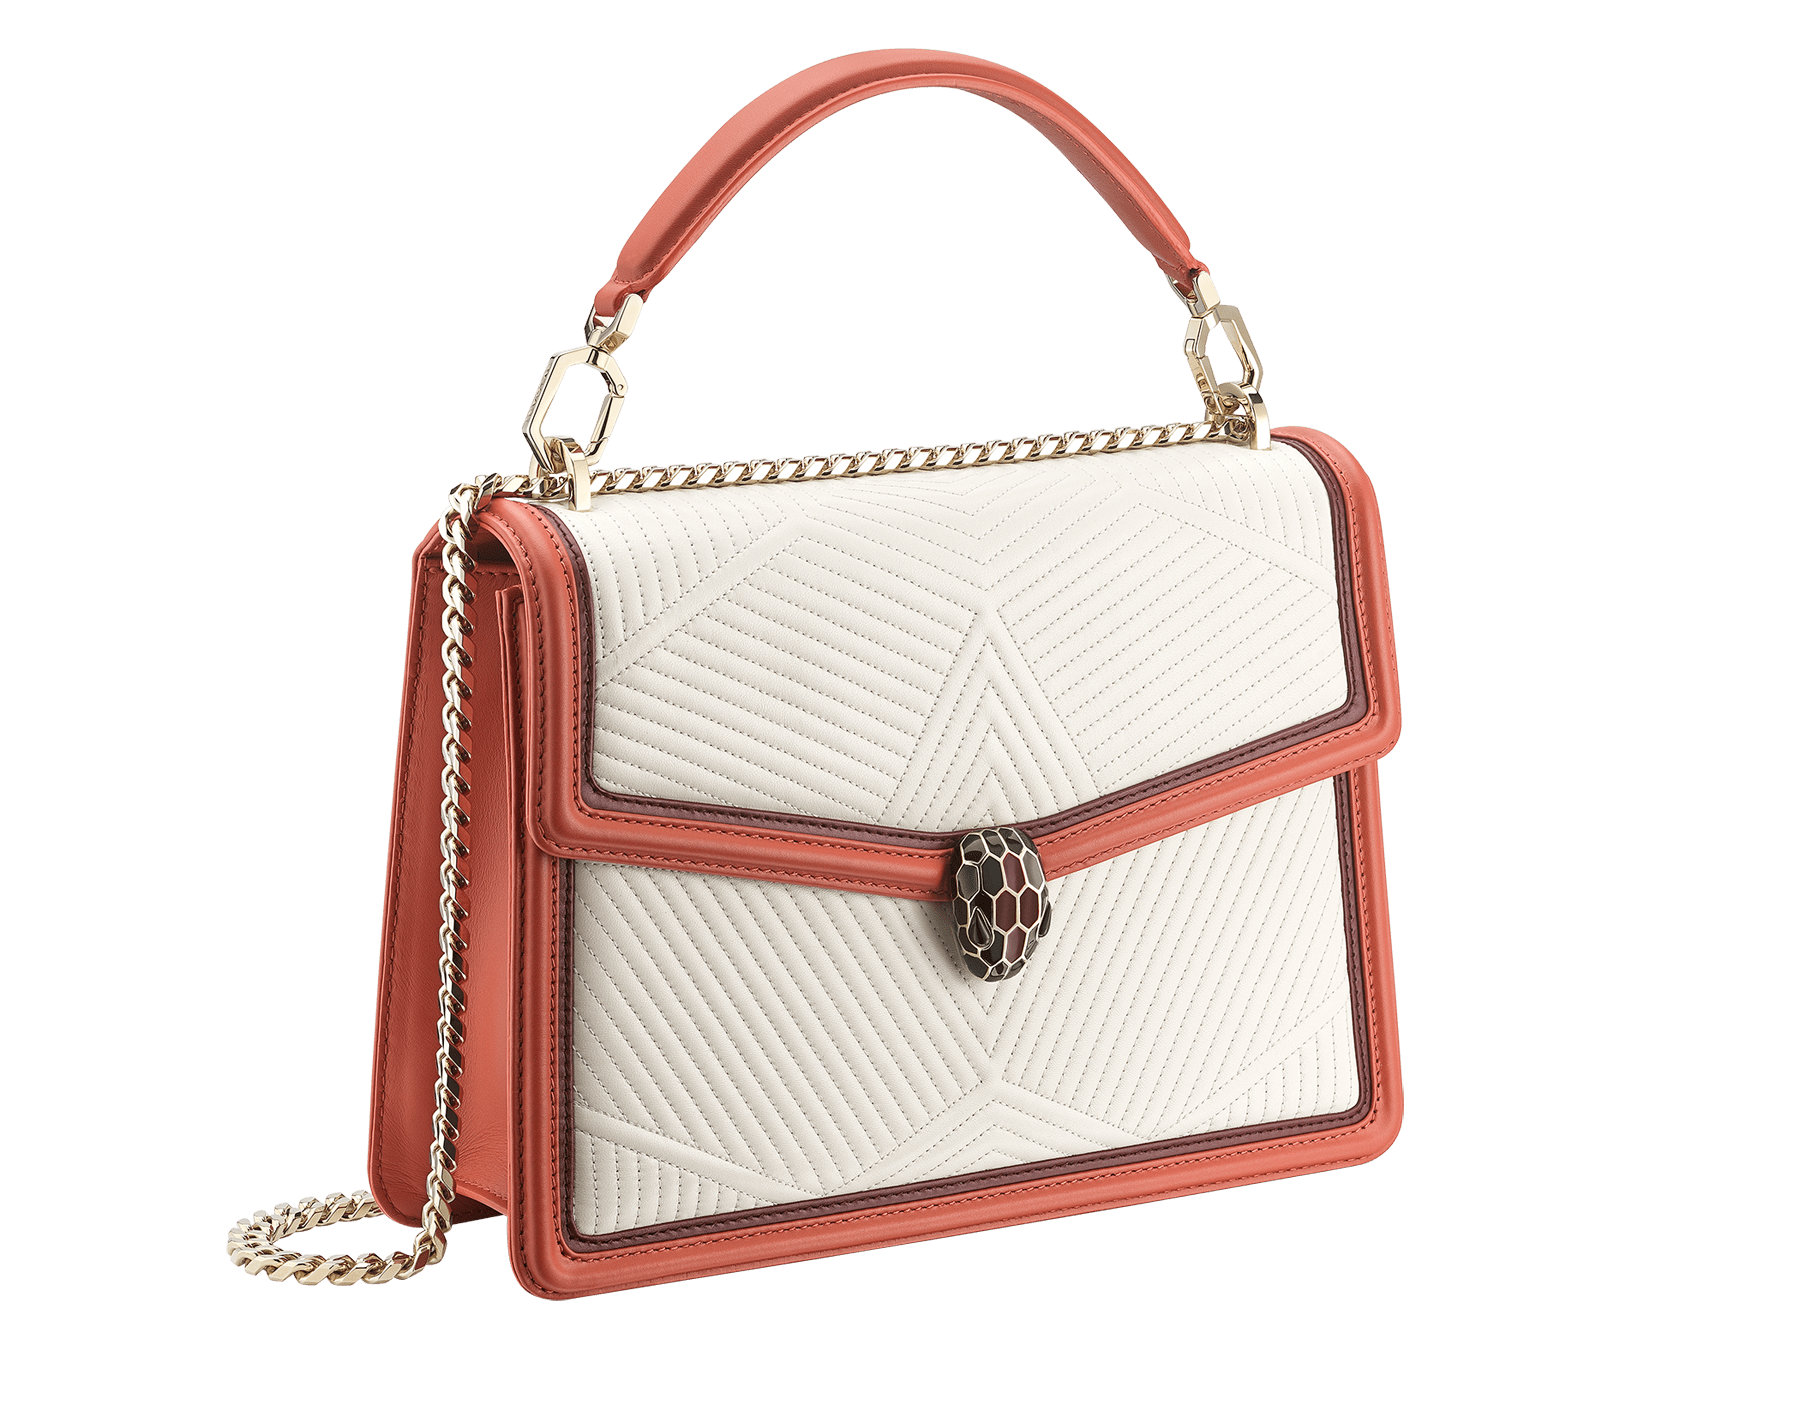 Serpenti Diamond Blast shoulder bag in white agate quilted nappa leather and imperial topaz with Roman garnet calf leather frames. Iconic snakehead closure in light gold plated brass embellished with Roman garnet and black enamel and black onyx eyes. 288840 image 3